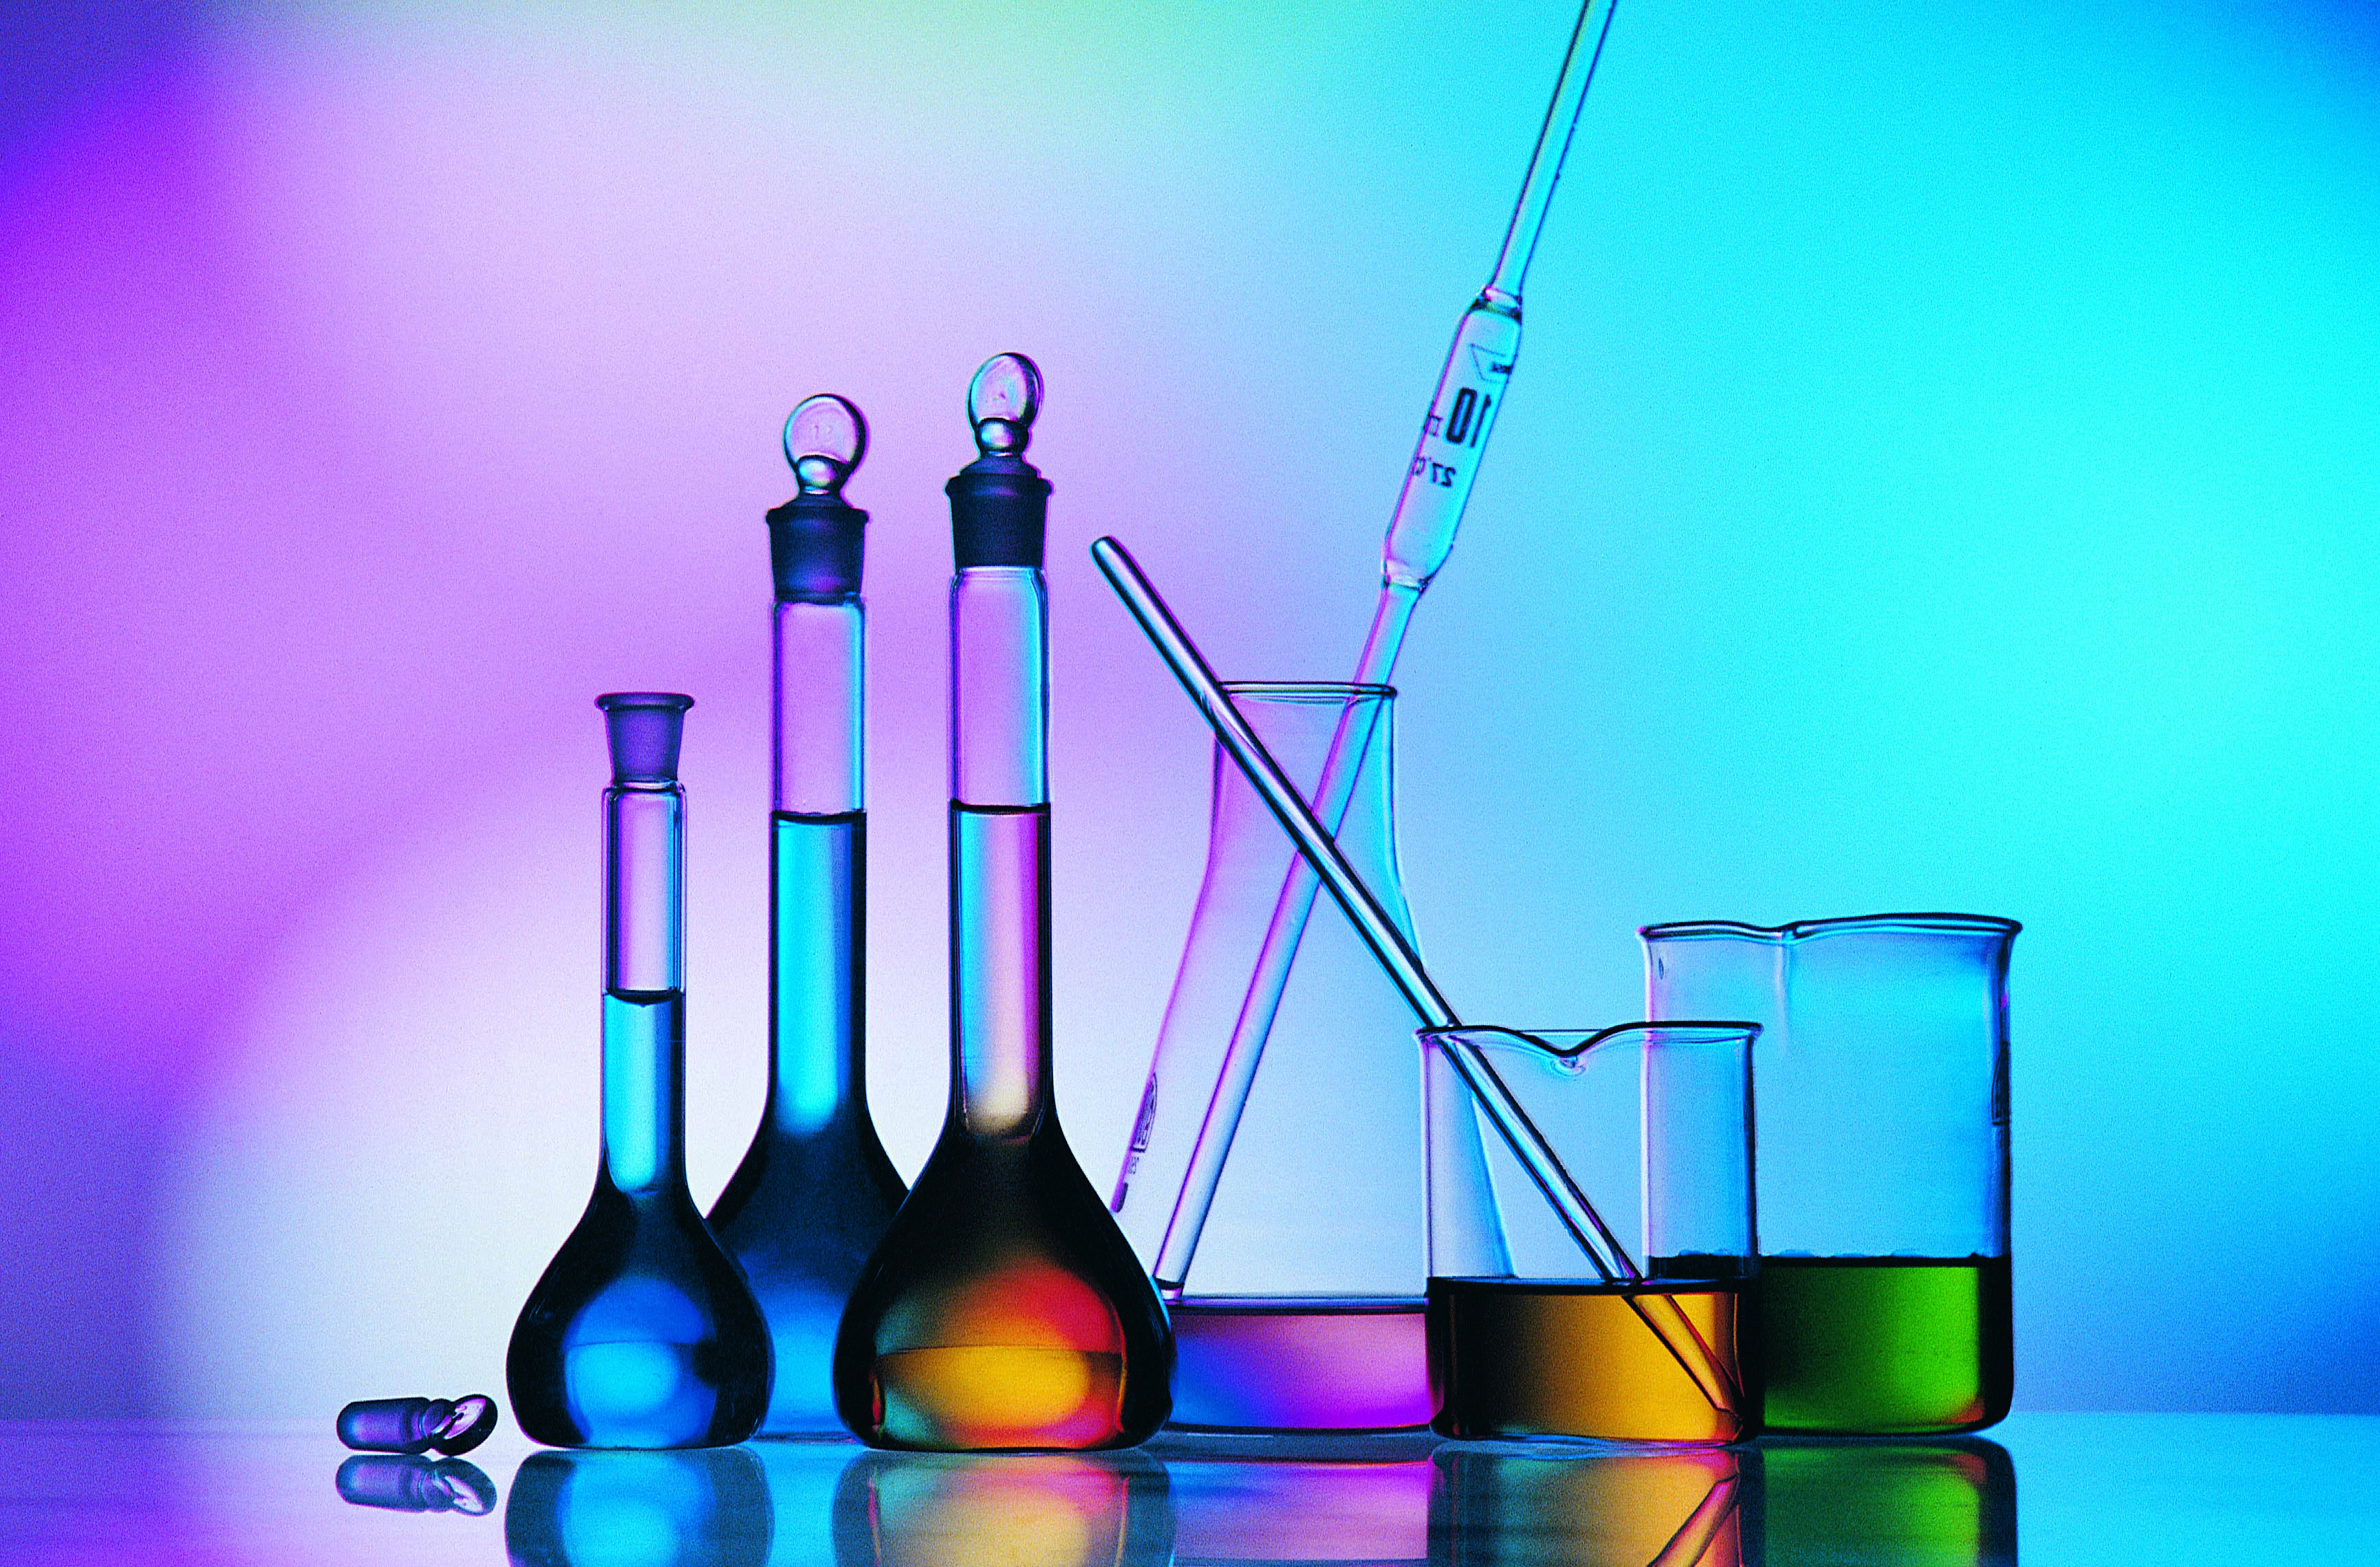 beakers and test tubes on a neon colored background